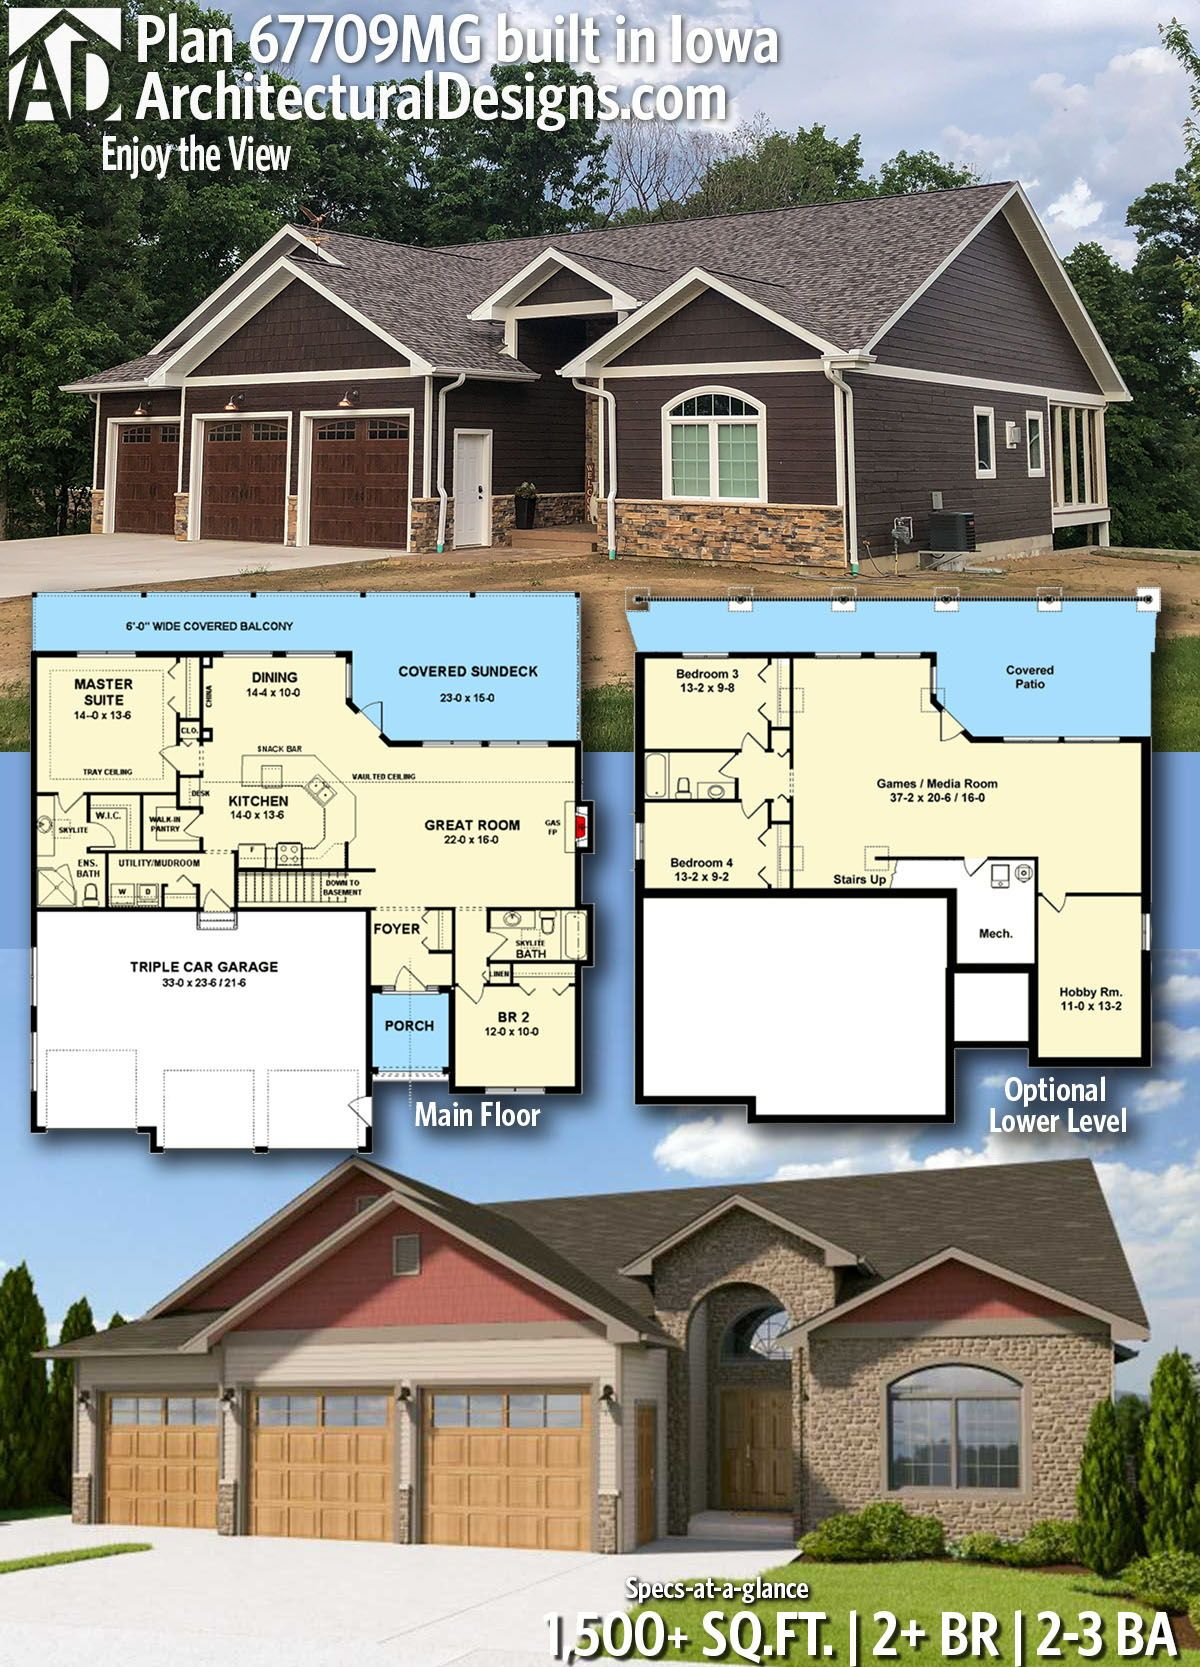 Architectural designs home plan mg comes to life in iowa this gives you also enjoy the view house plans with stories rh pinterest